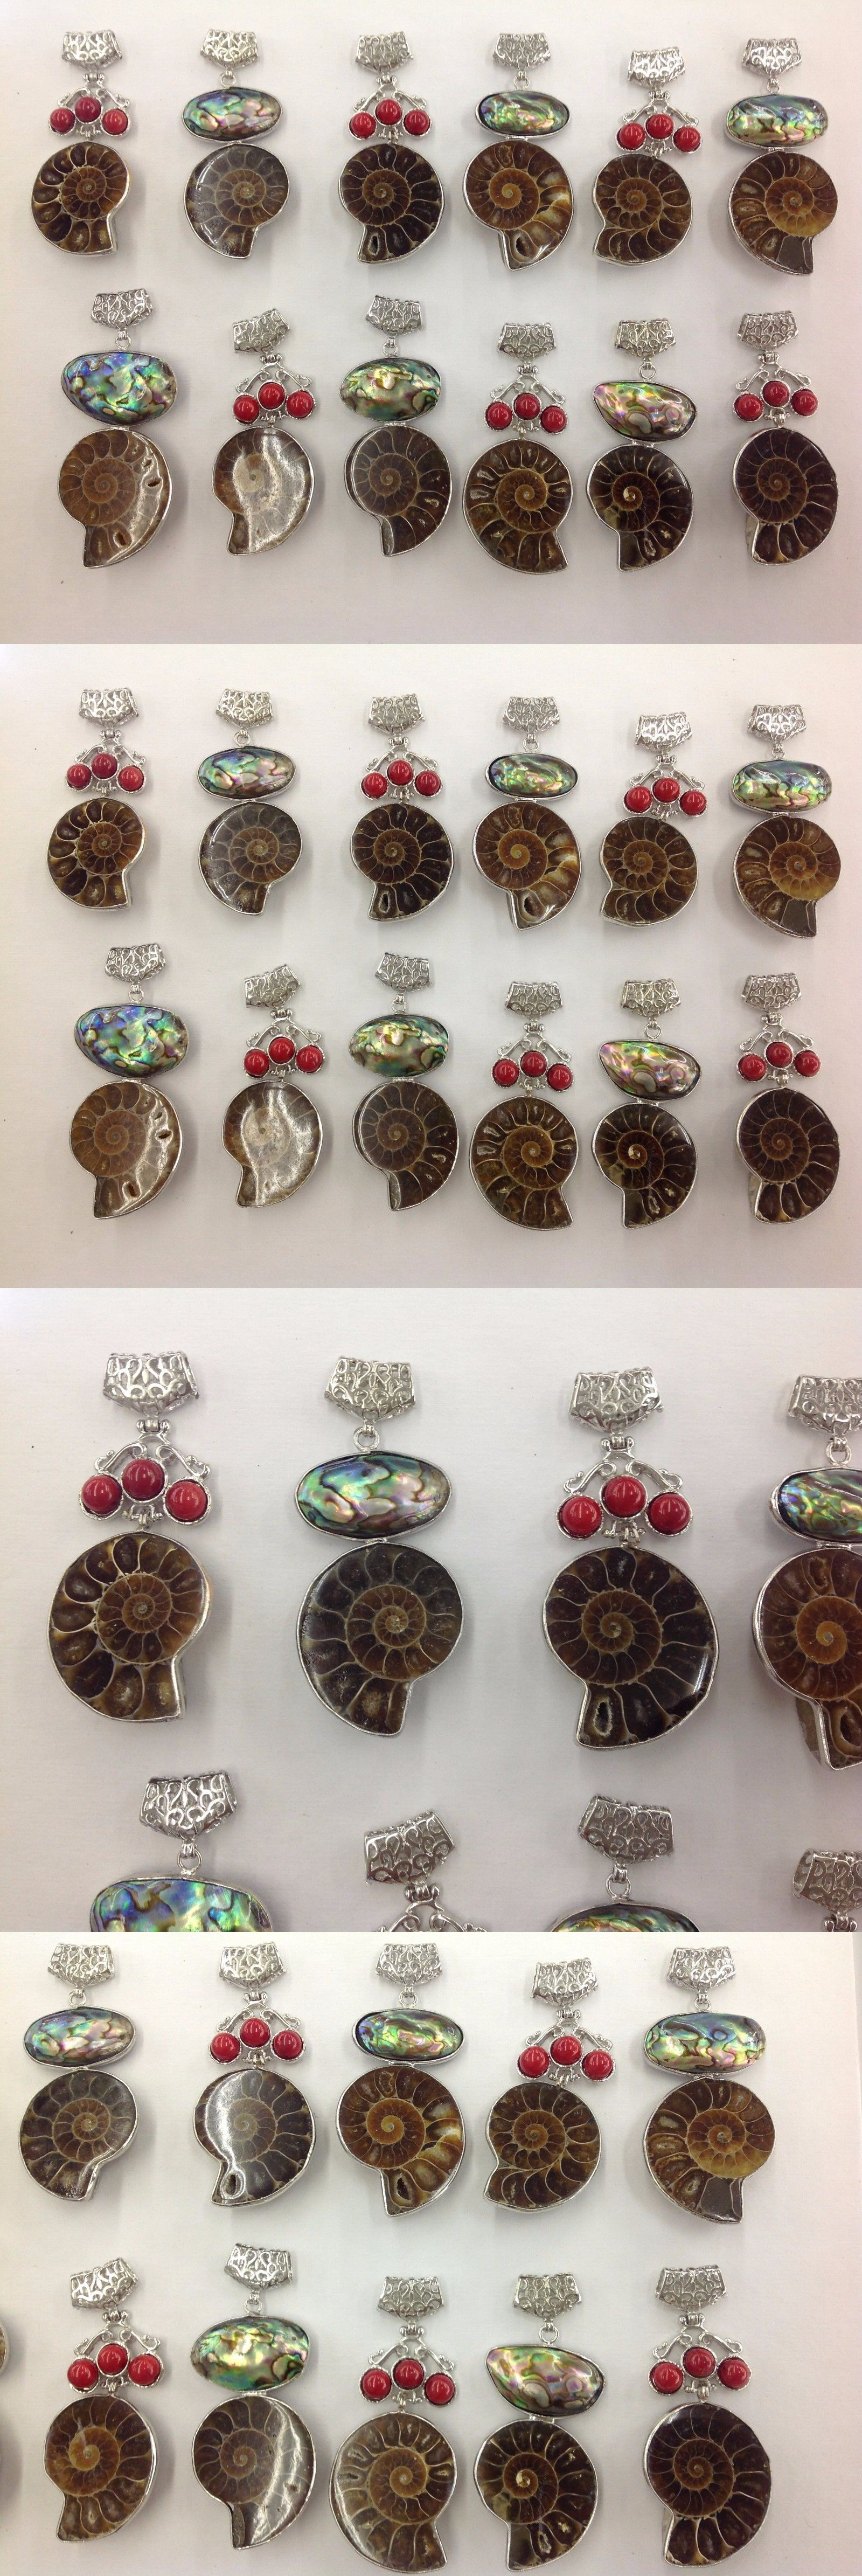 Pendants and lockets 45079 wholesale mixed lot of 12 ammonite pendants and lockets 45079 wholesale mixed lot of 12 ammonite fossil natural abalone shell pendants aloadofball Image collections